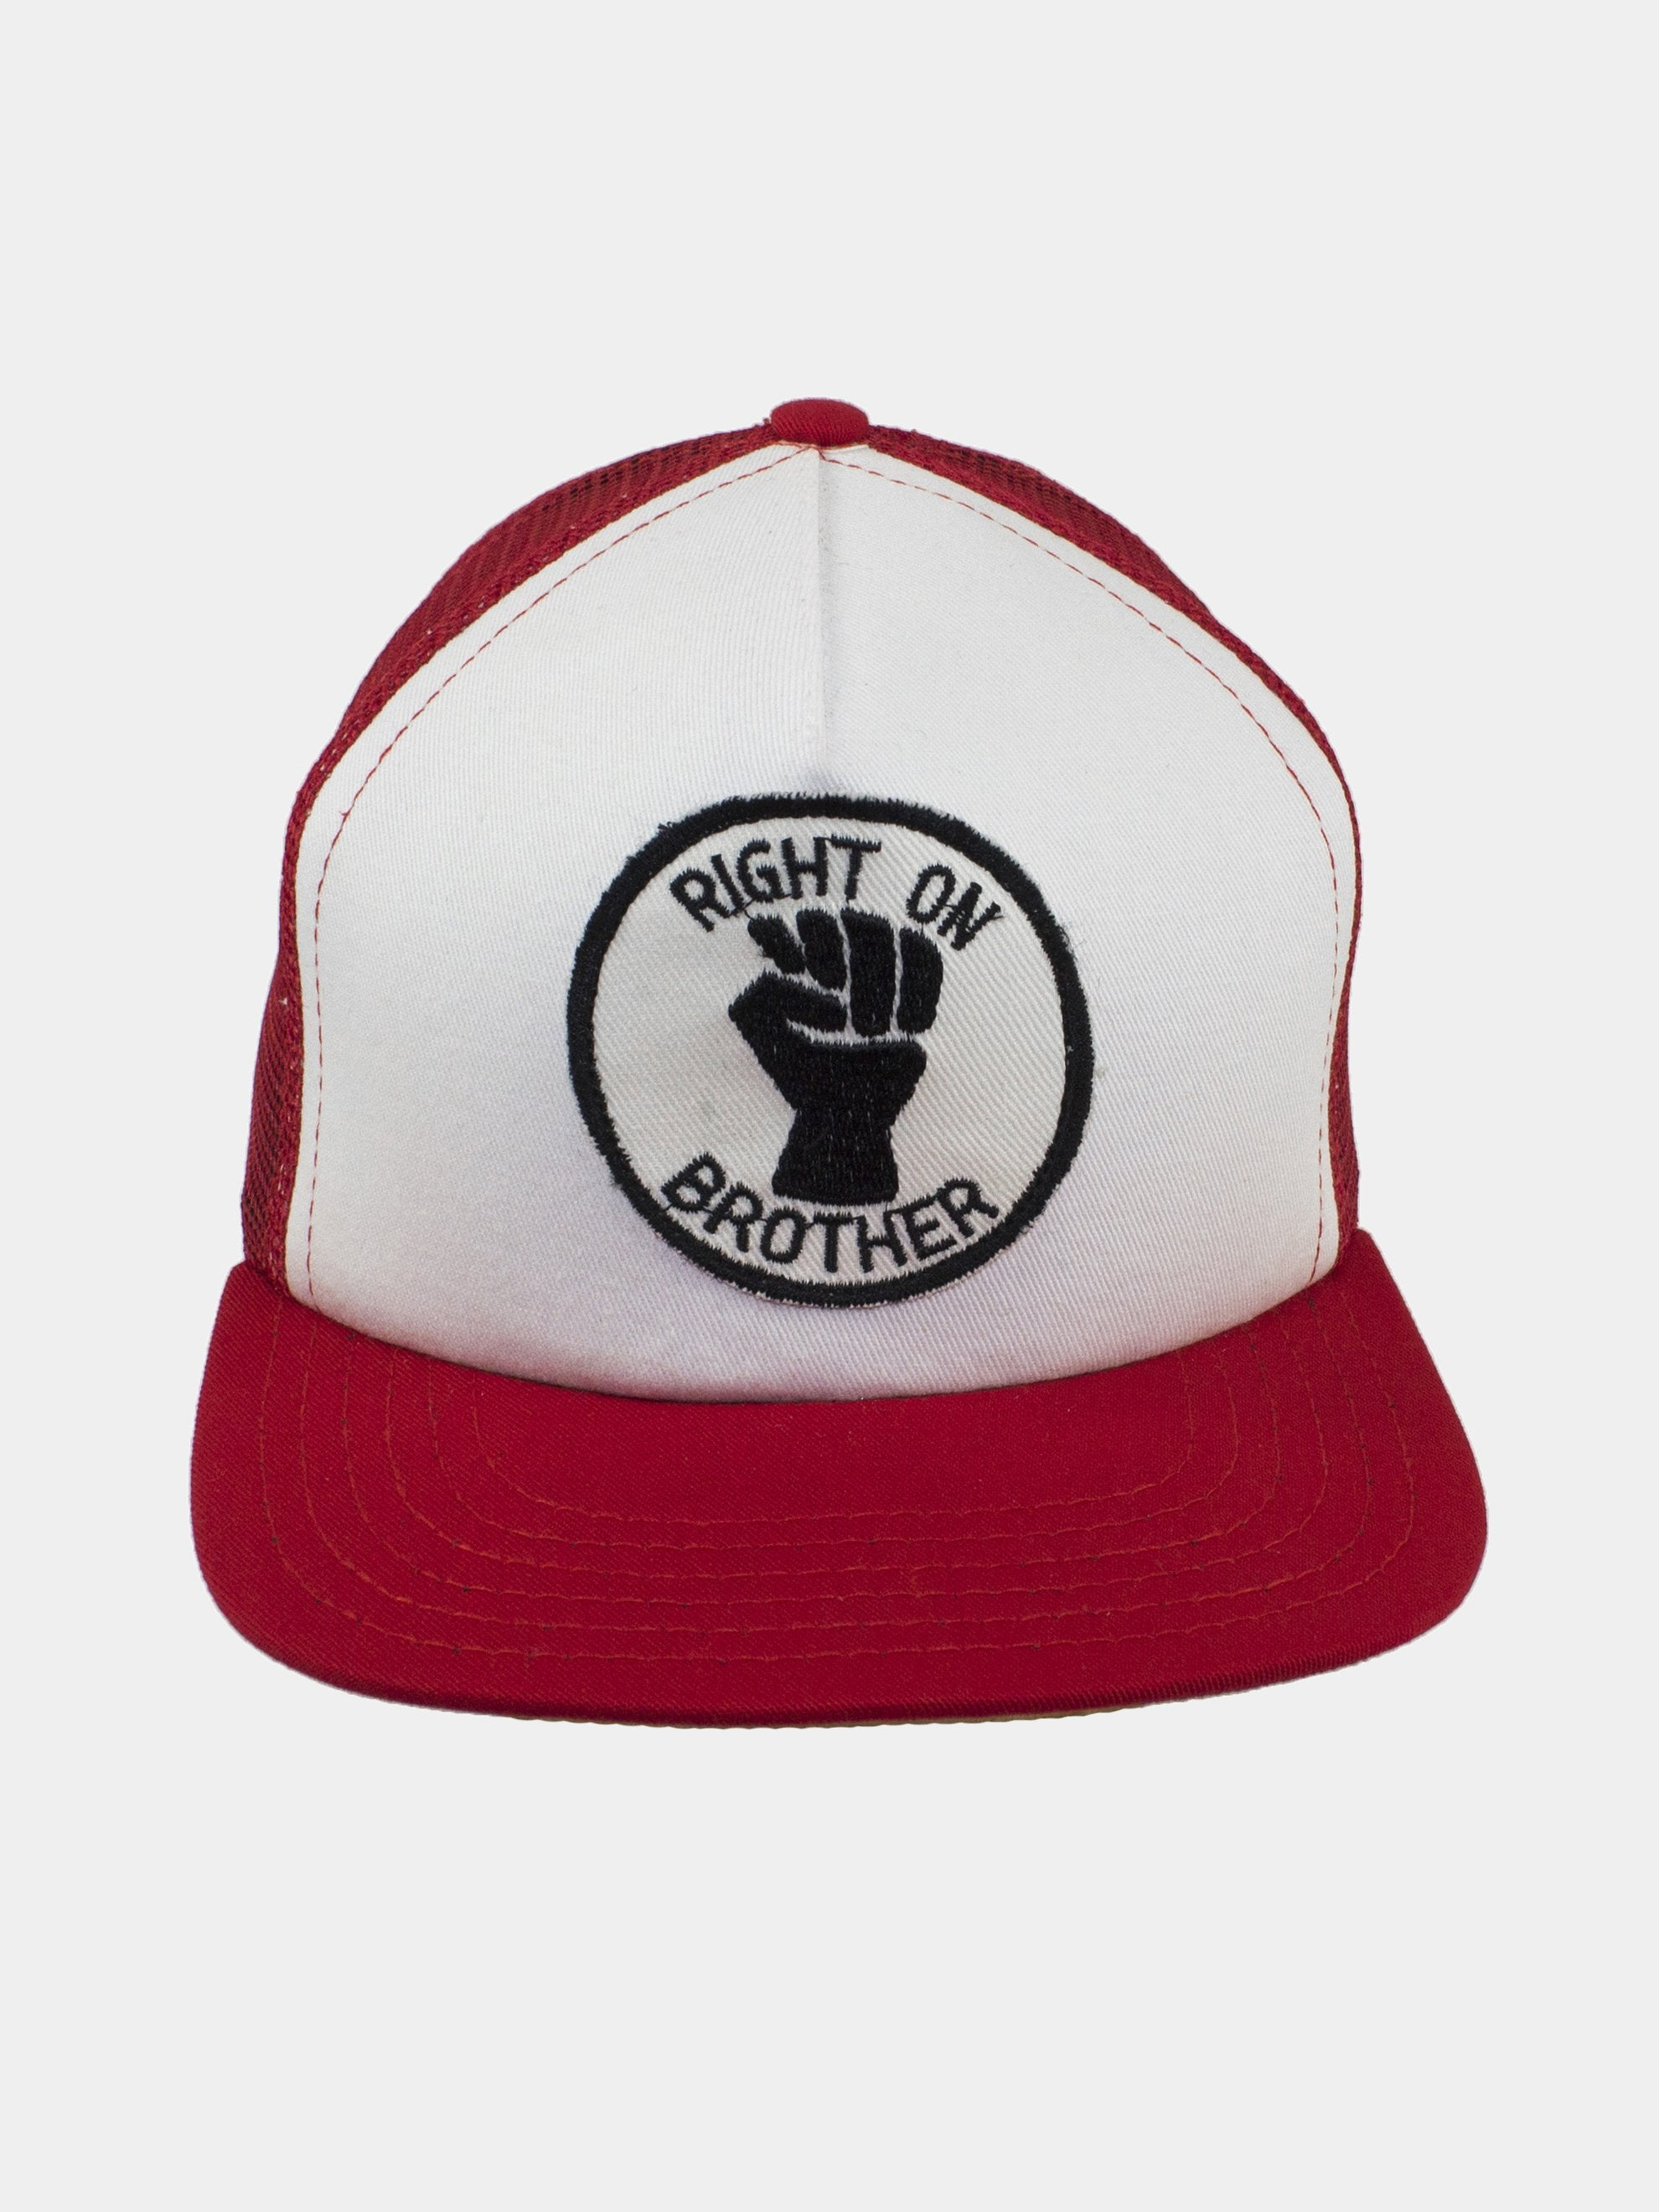 Red Hat/White Patch Right On Brother 1